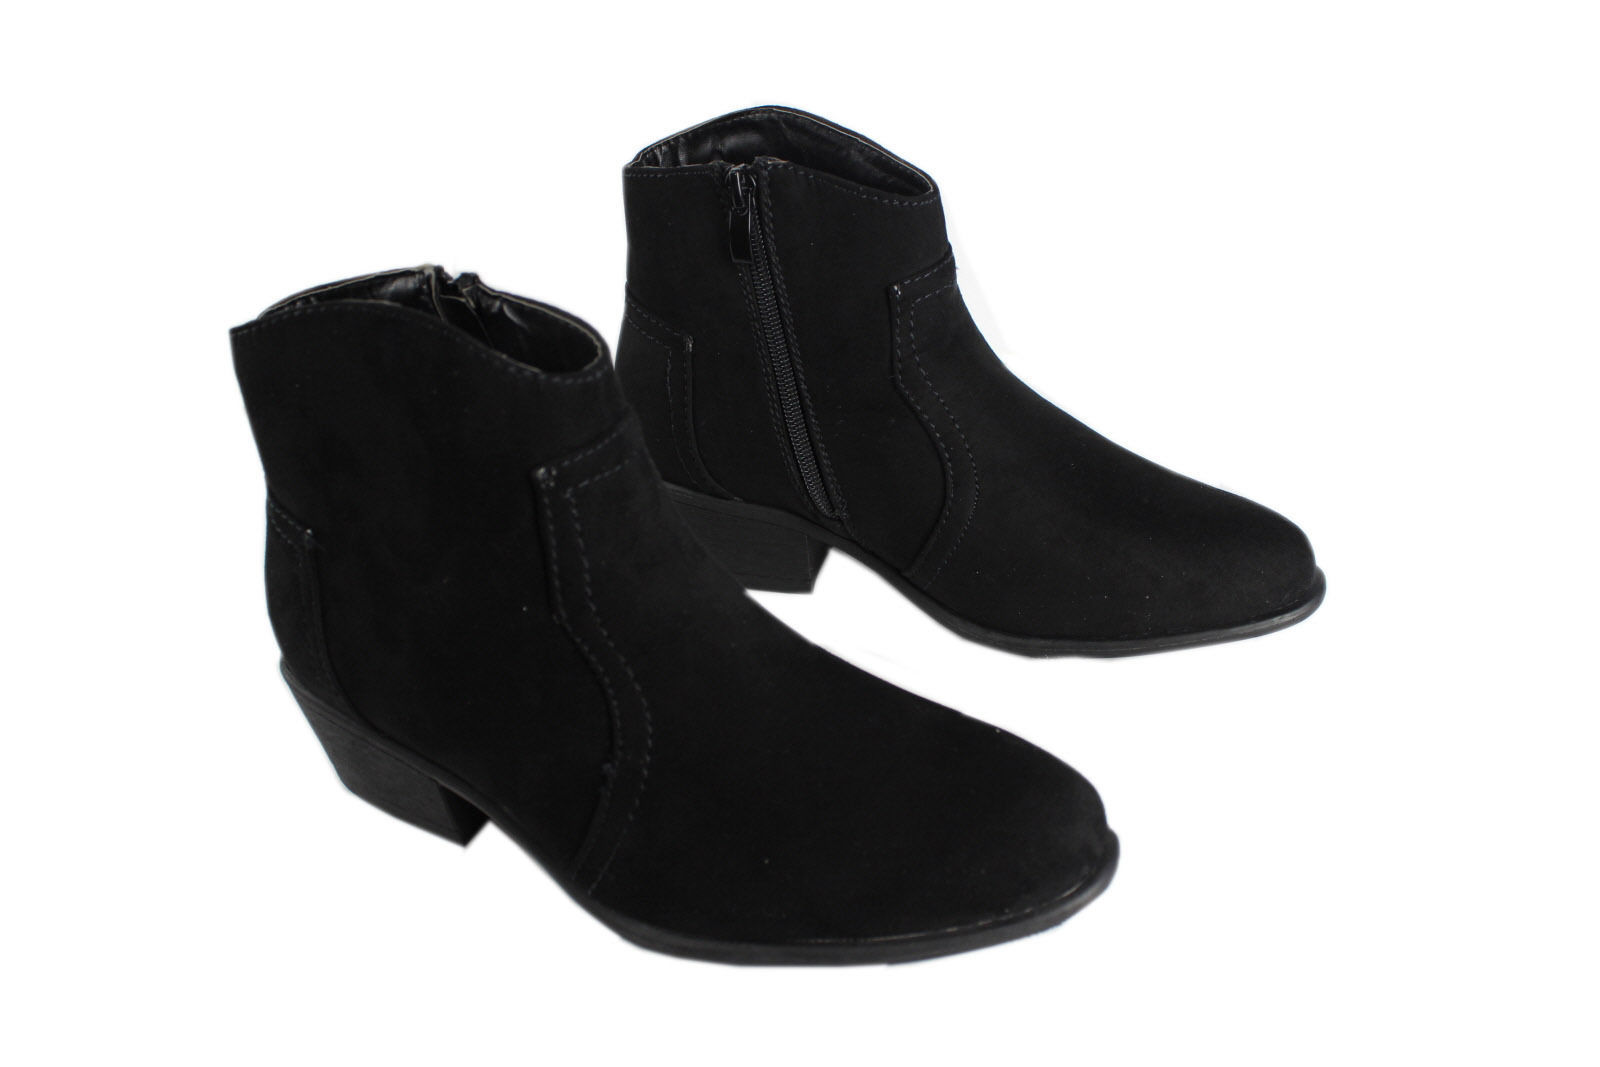 d9f2c20a1b2 Bamboo Sadie-05 Suede Ankle BOOTS Western and 29 similar items. 57